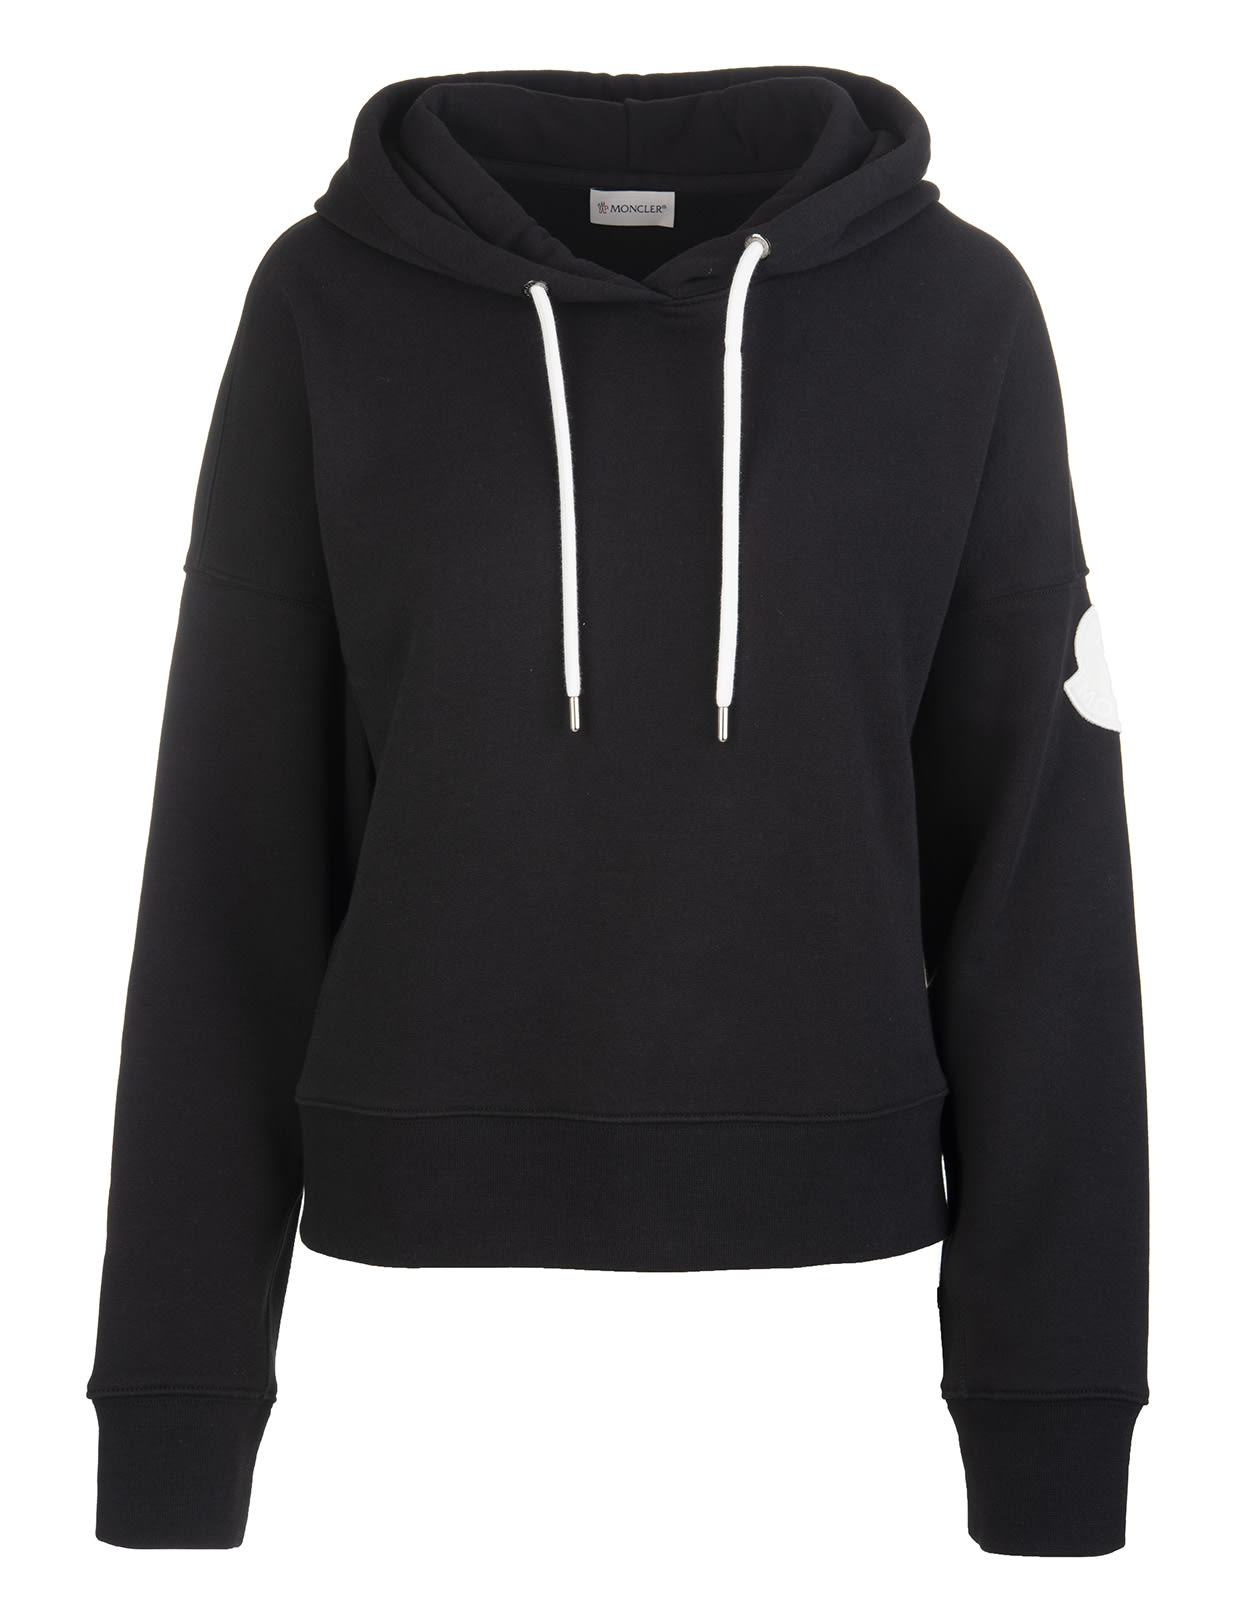 Moncler BLACK WOMAN HOODIE WITH LOGO